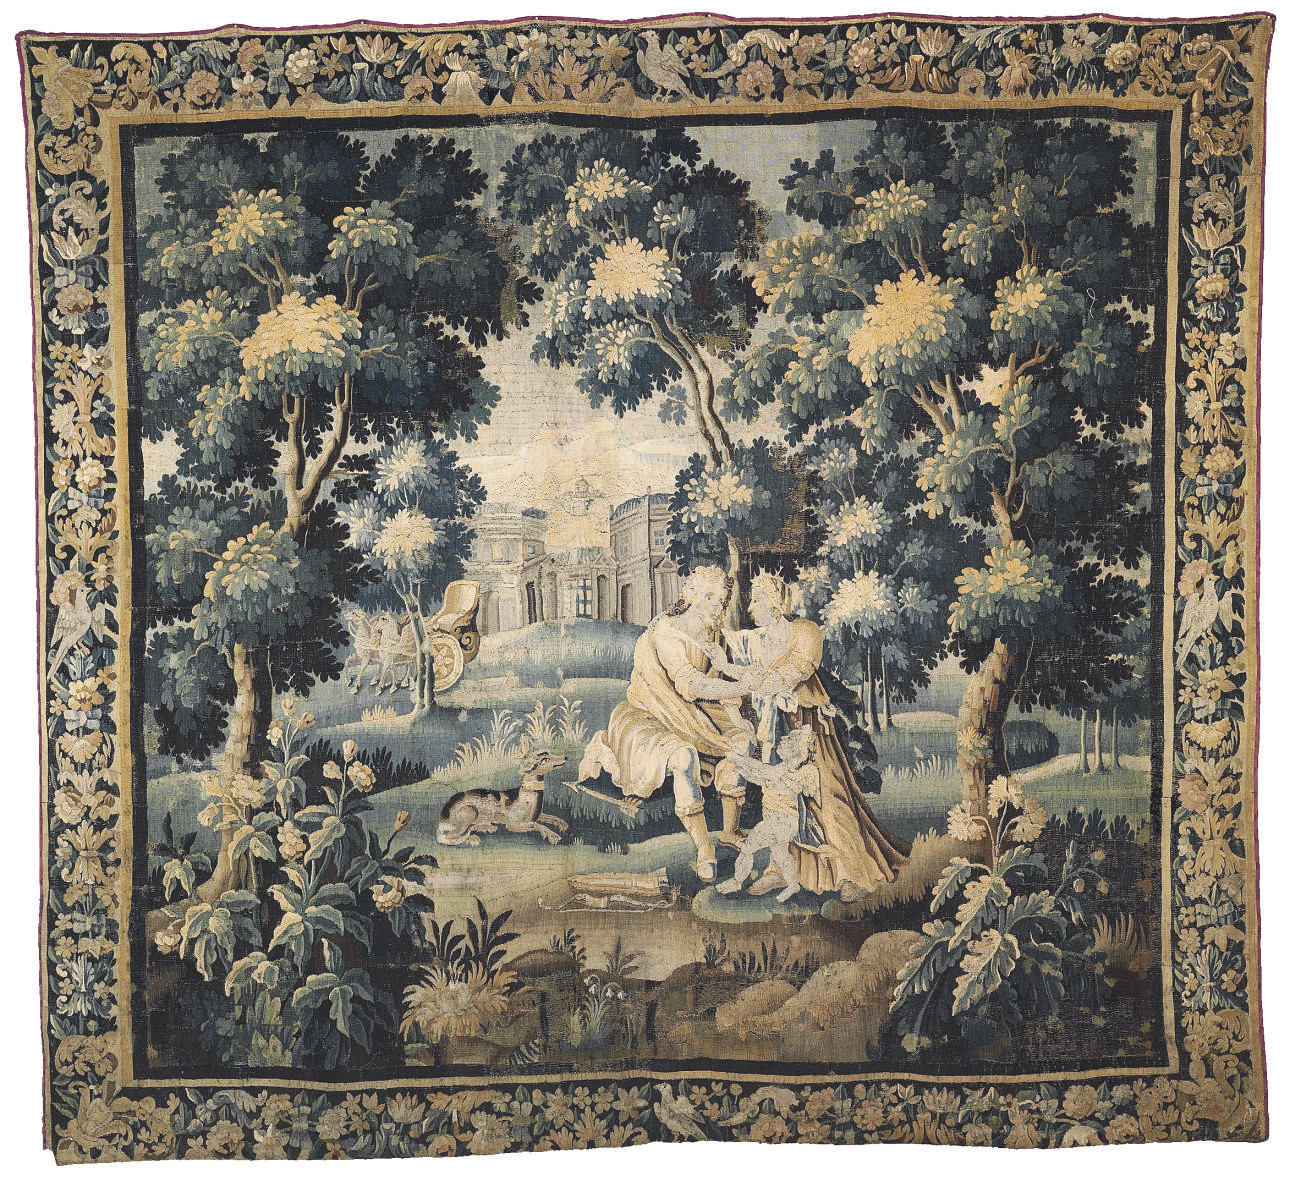 A FLEMISH VERDURE MYTHOLOGICAL